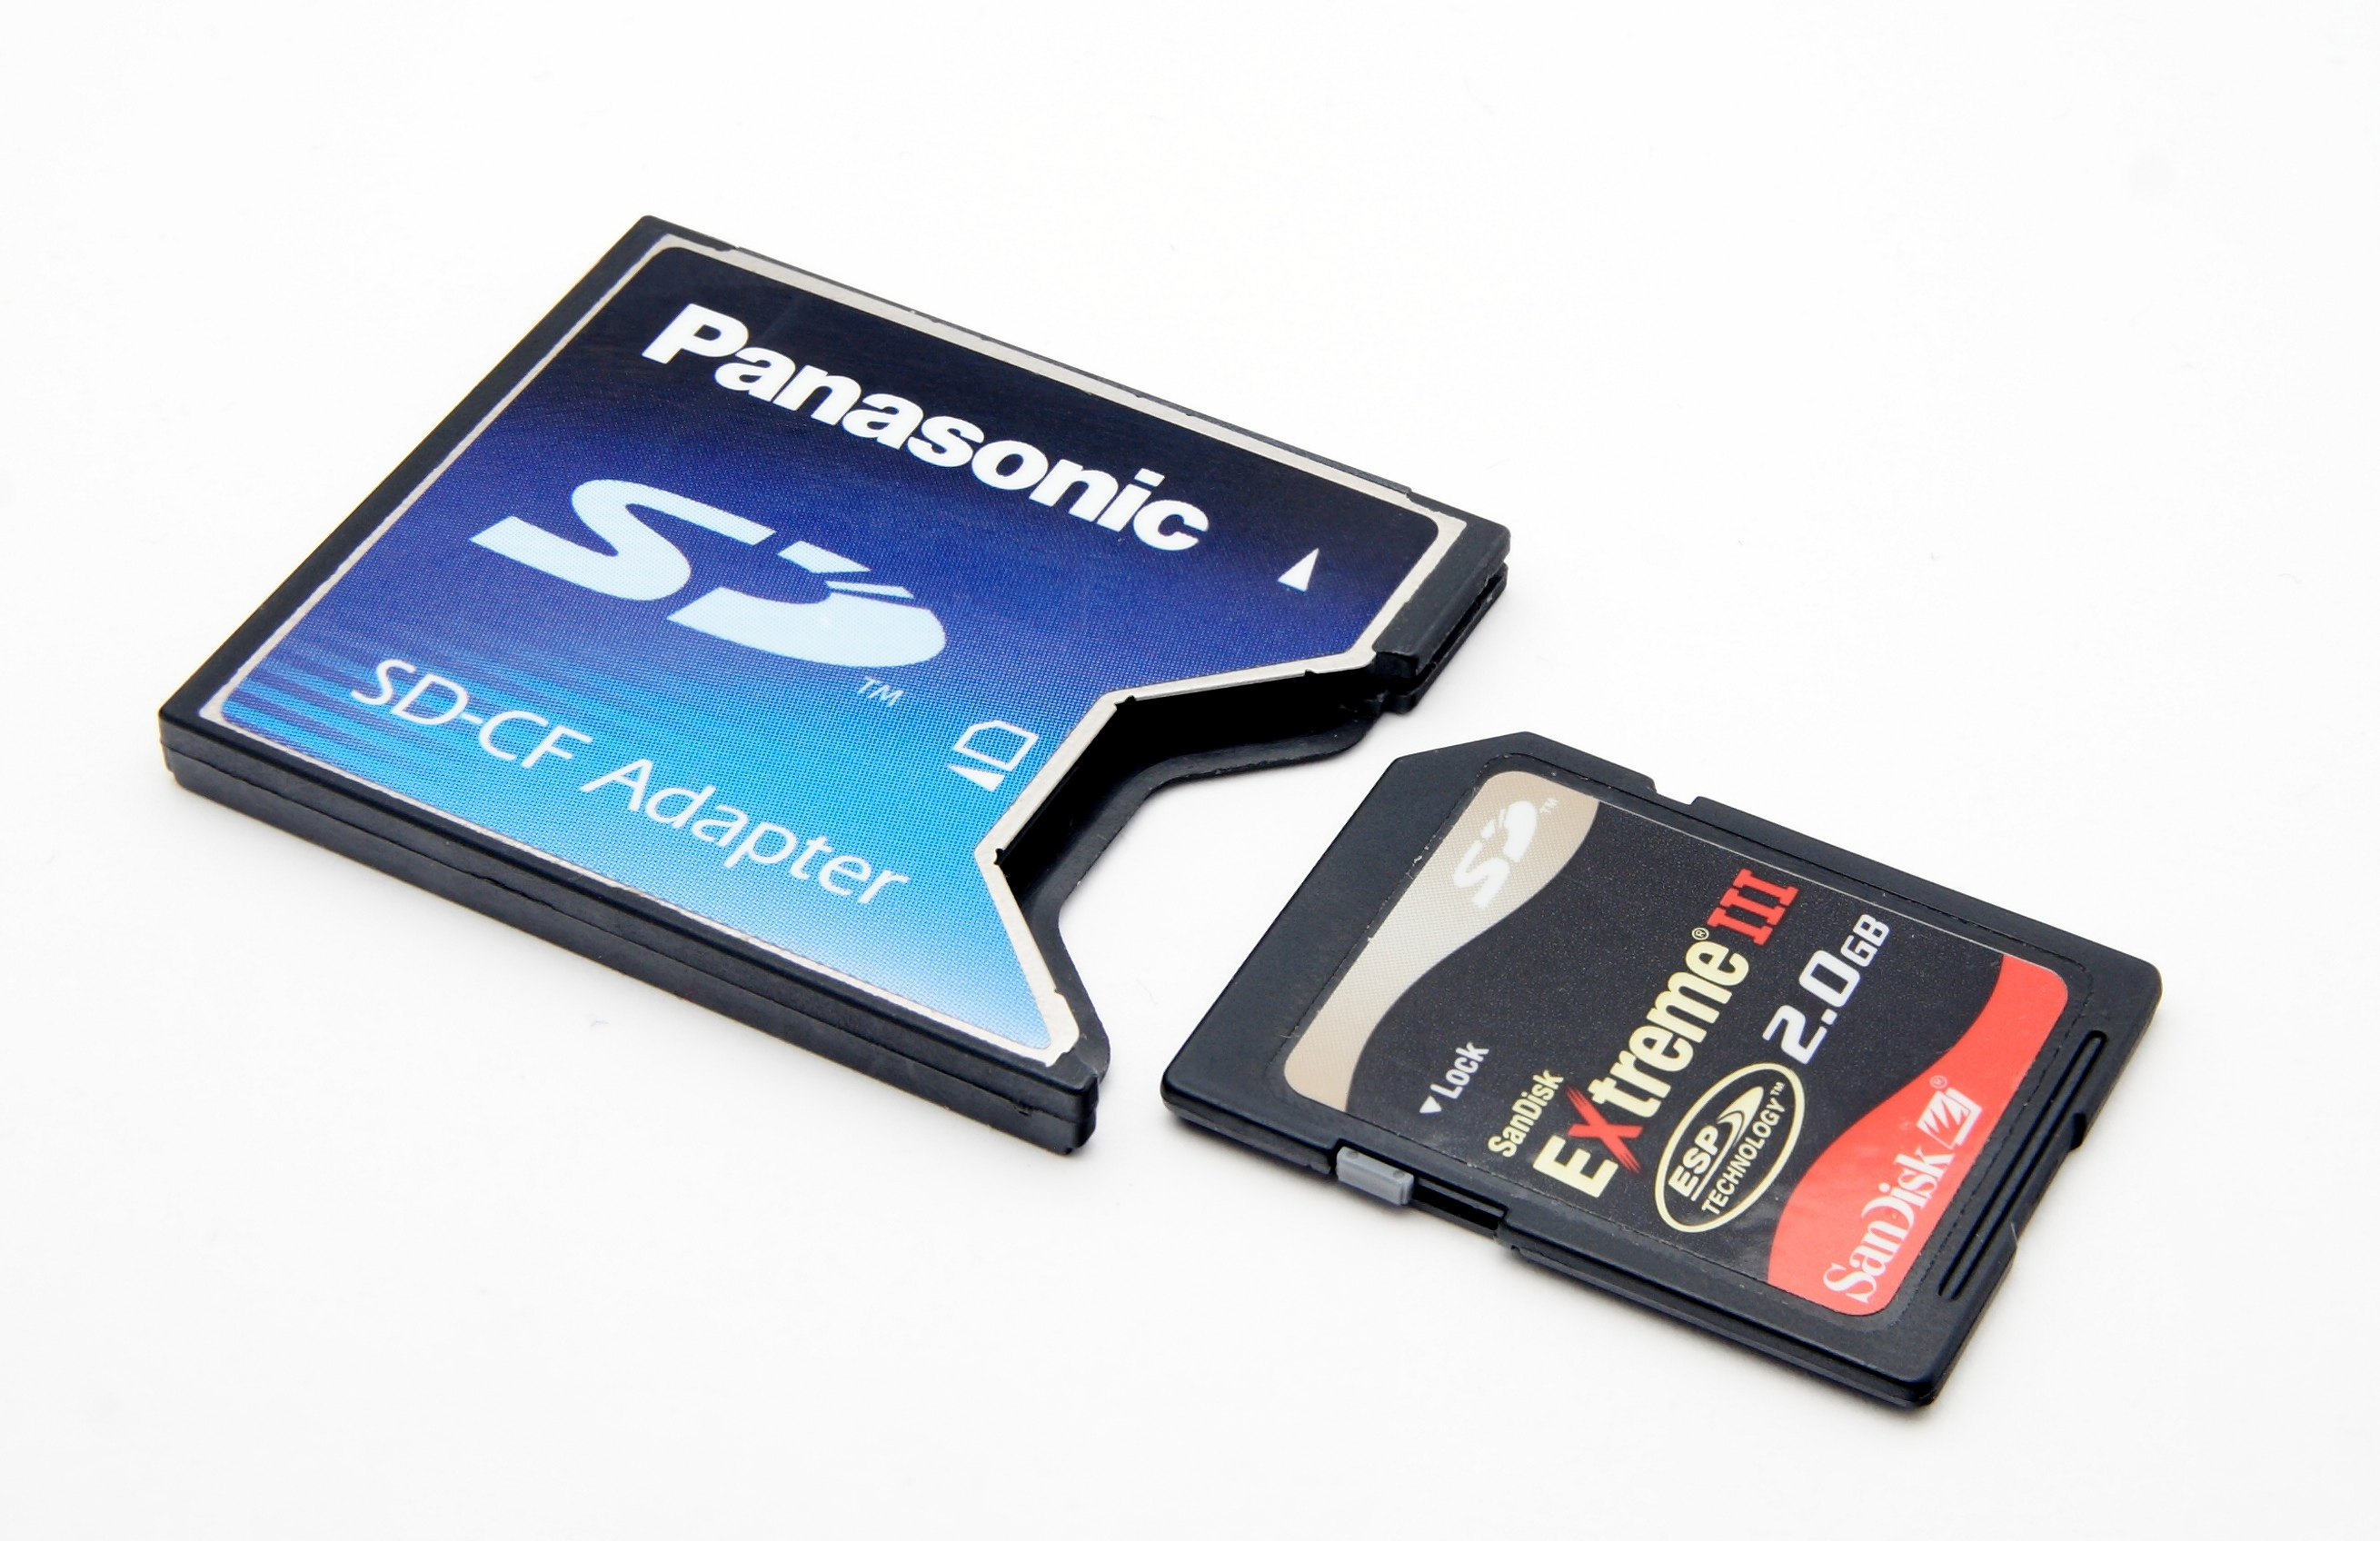 Compact Flash File:compactflash Securedigital Adapter.jpg - Wikimedia